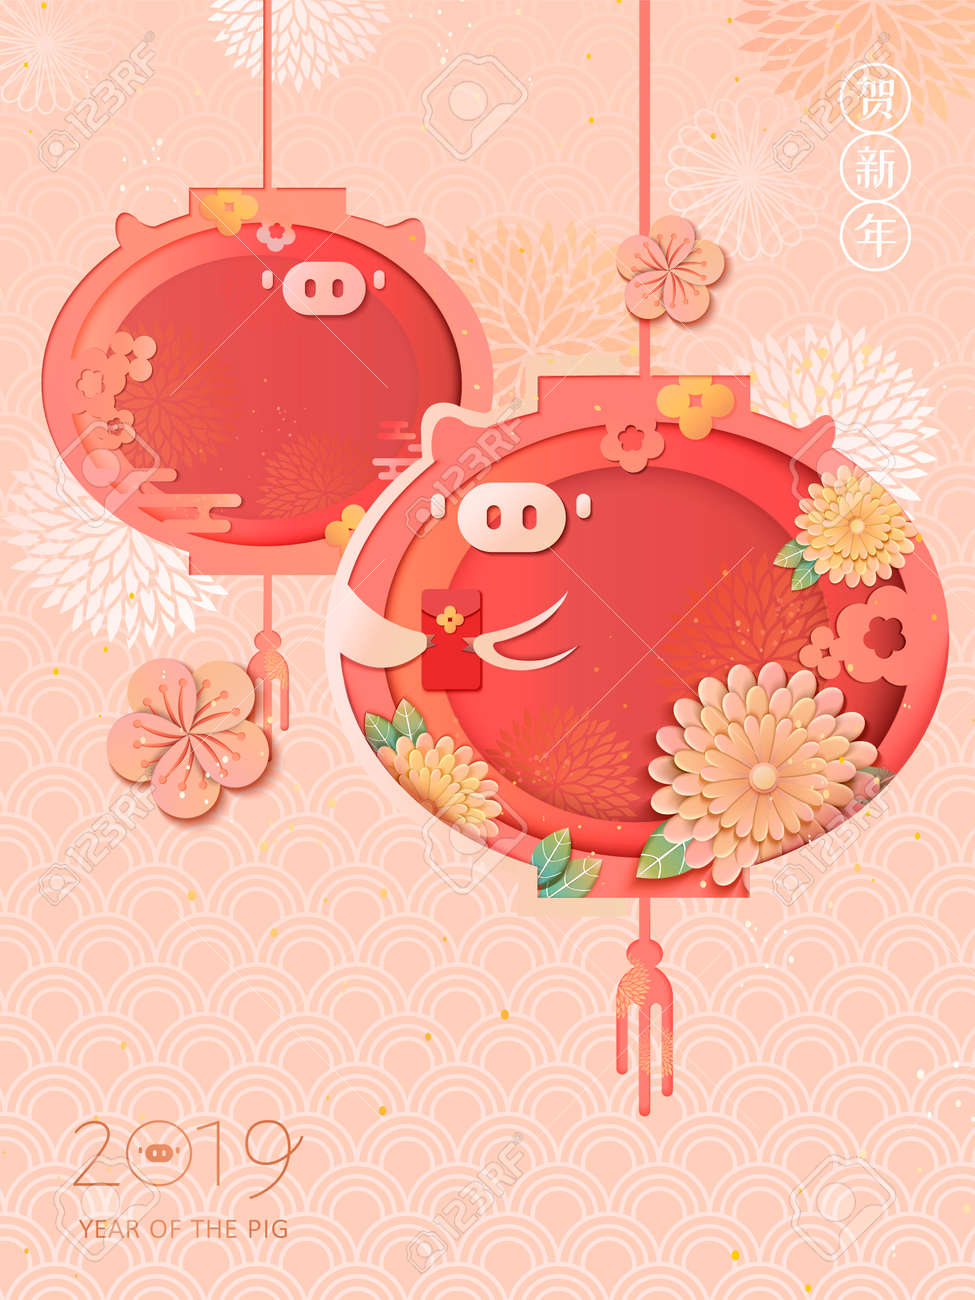 Happy Chinese new year poster with lovely piggy lantern and chrysanthemum design in paper art style, new year wishes in Chinese - 107129686